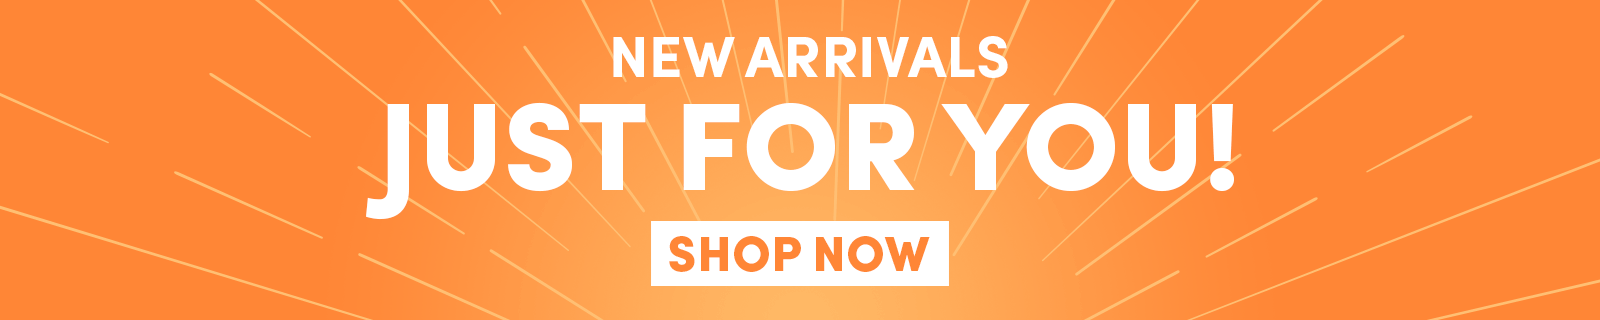 New Arrivals Just For You! | Shop Now